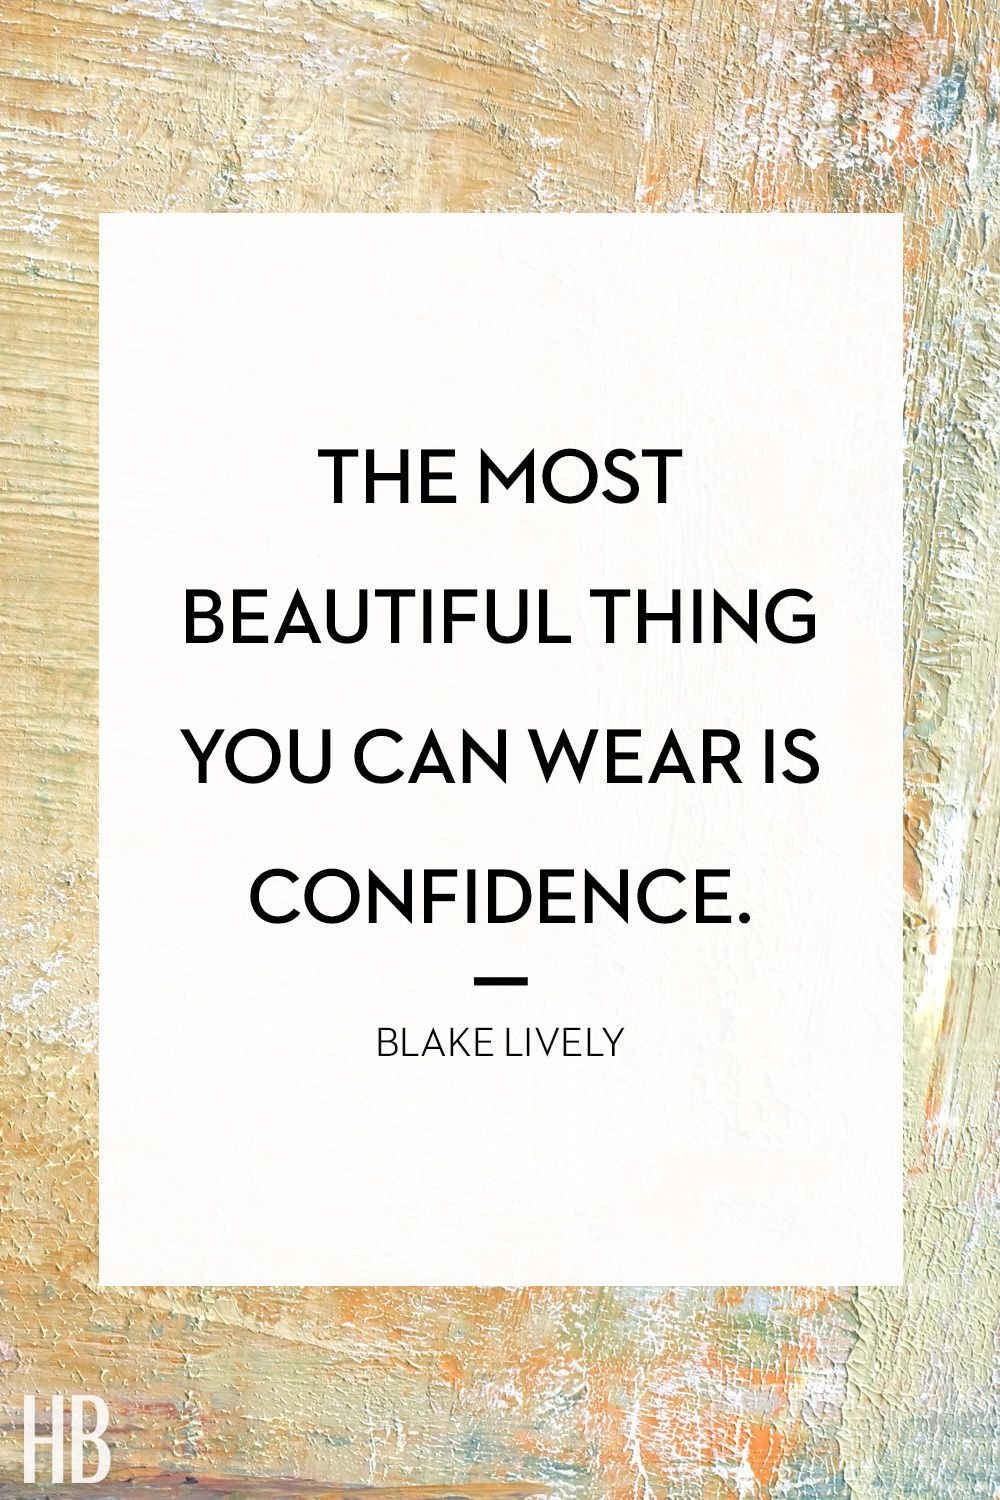 Image of: Pictures Askideascom 20 Beautiful Quotes Sayings About Beauty